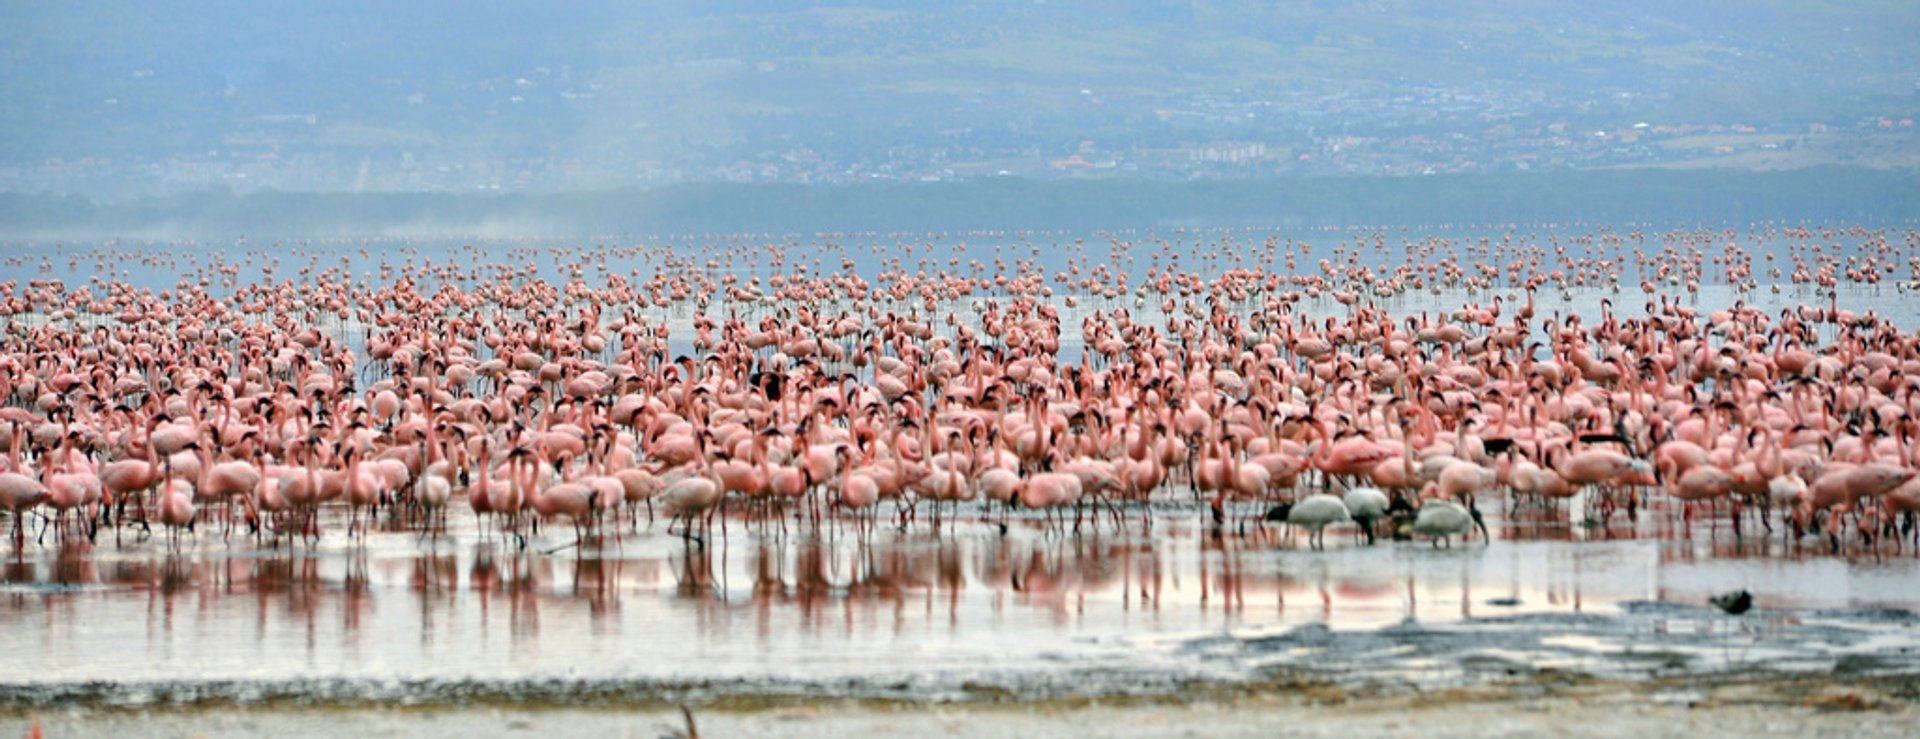 Over 1 million flamingoes in the park literally turn the shores of Lake Nakuru 2020